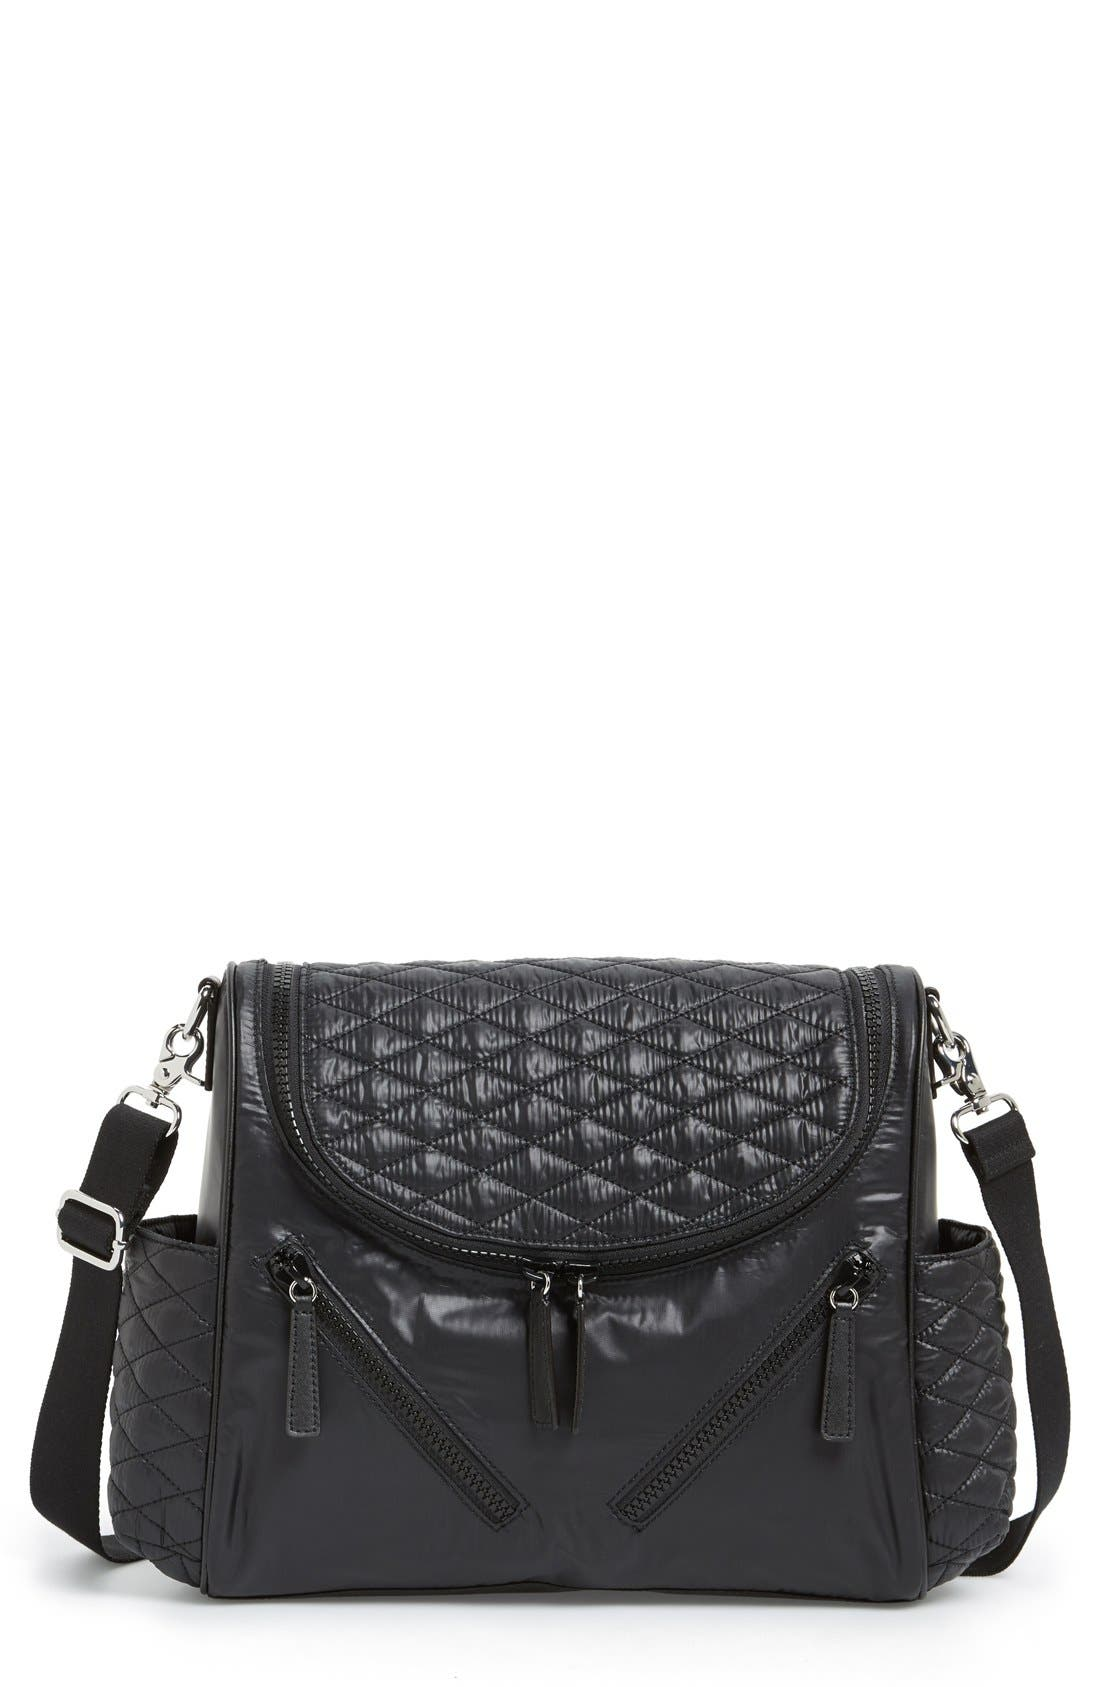 Alternate Image 1 Selected - Rebecca Minkoff 'Jude' Nylon Baby Bag